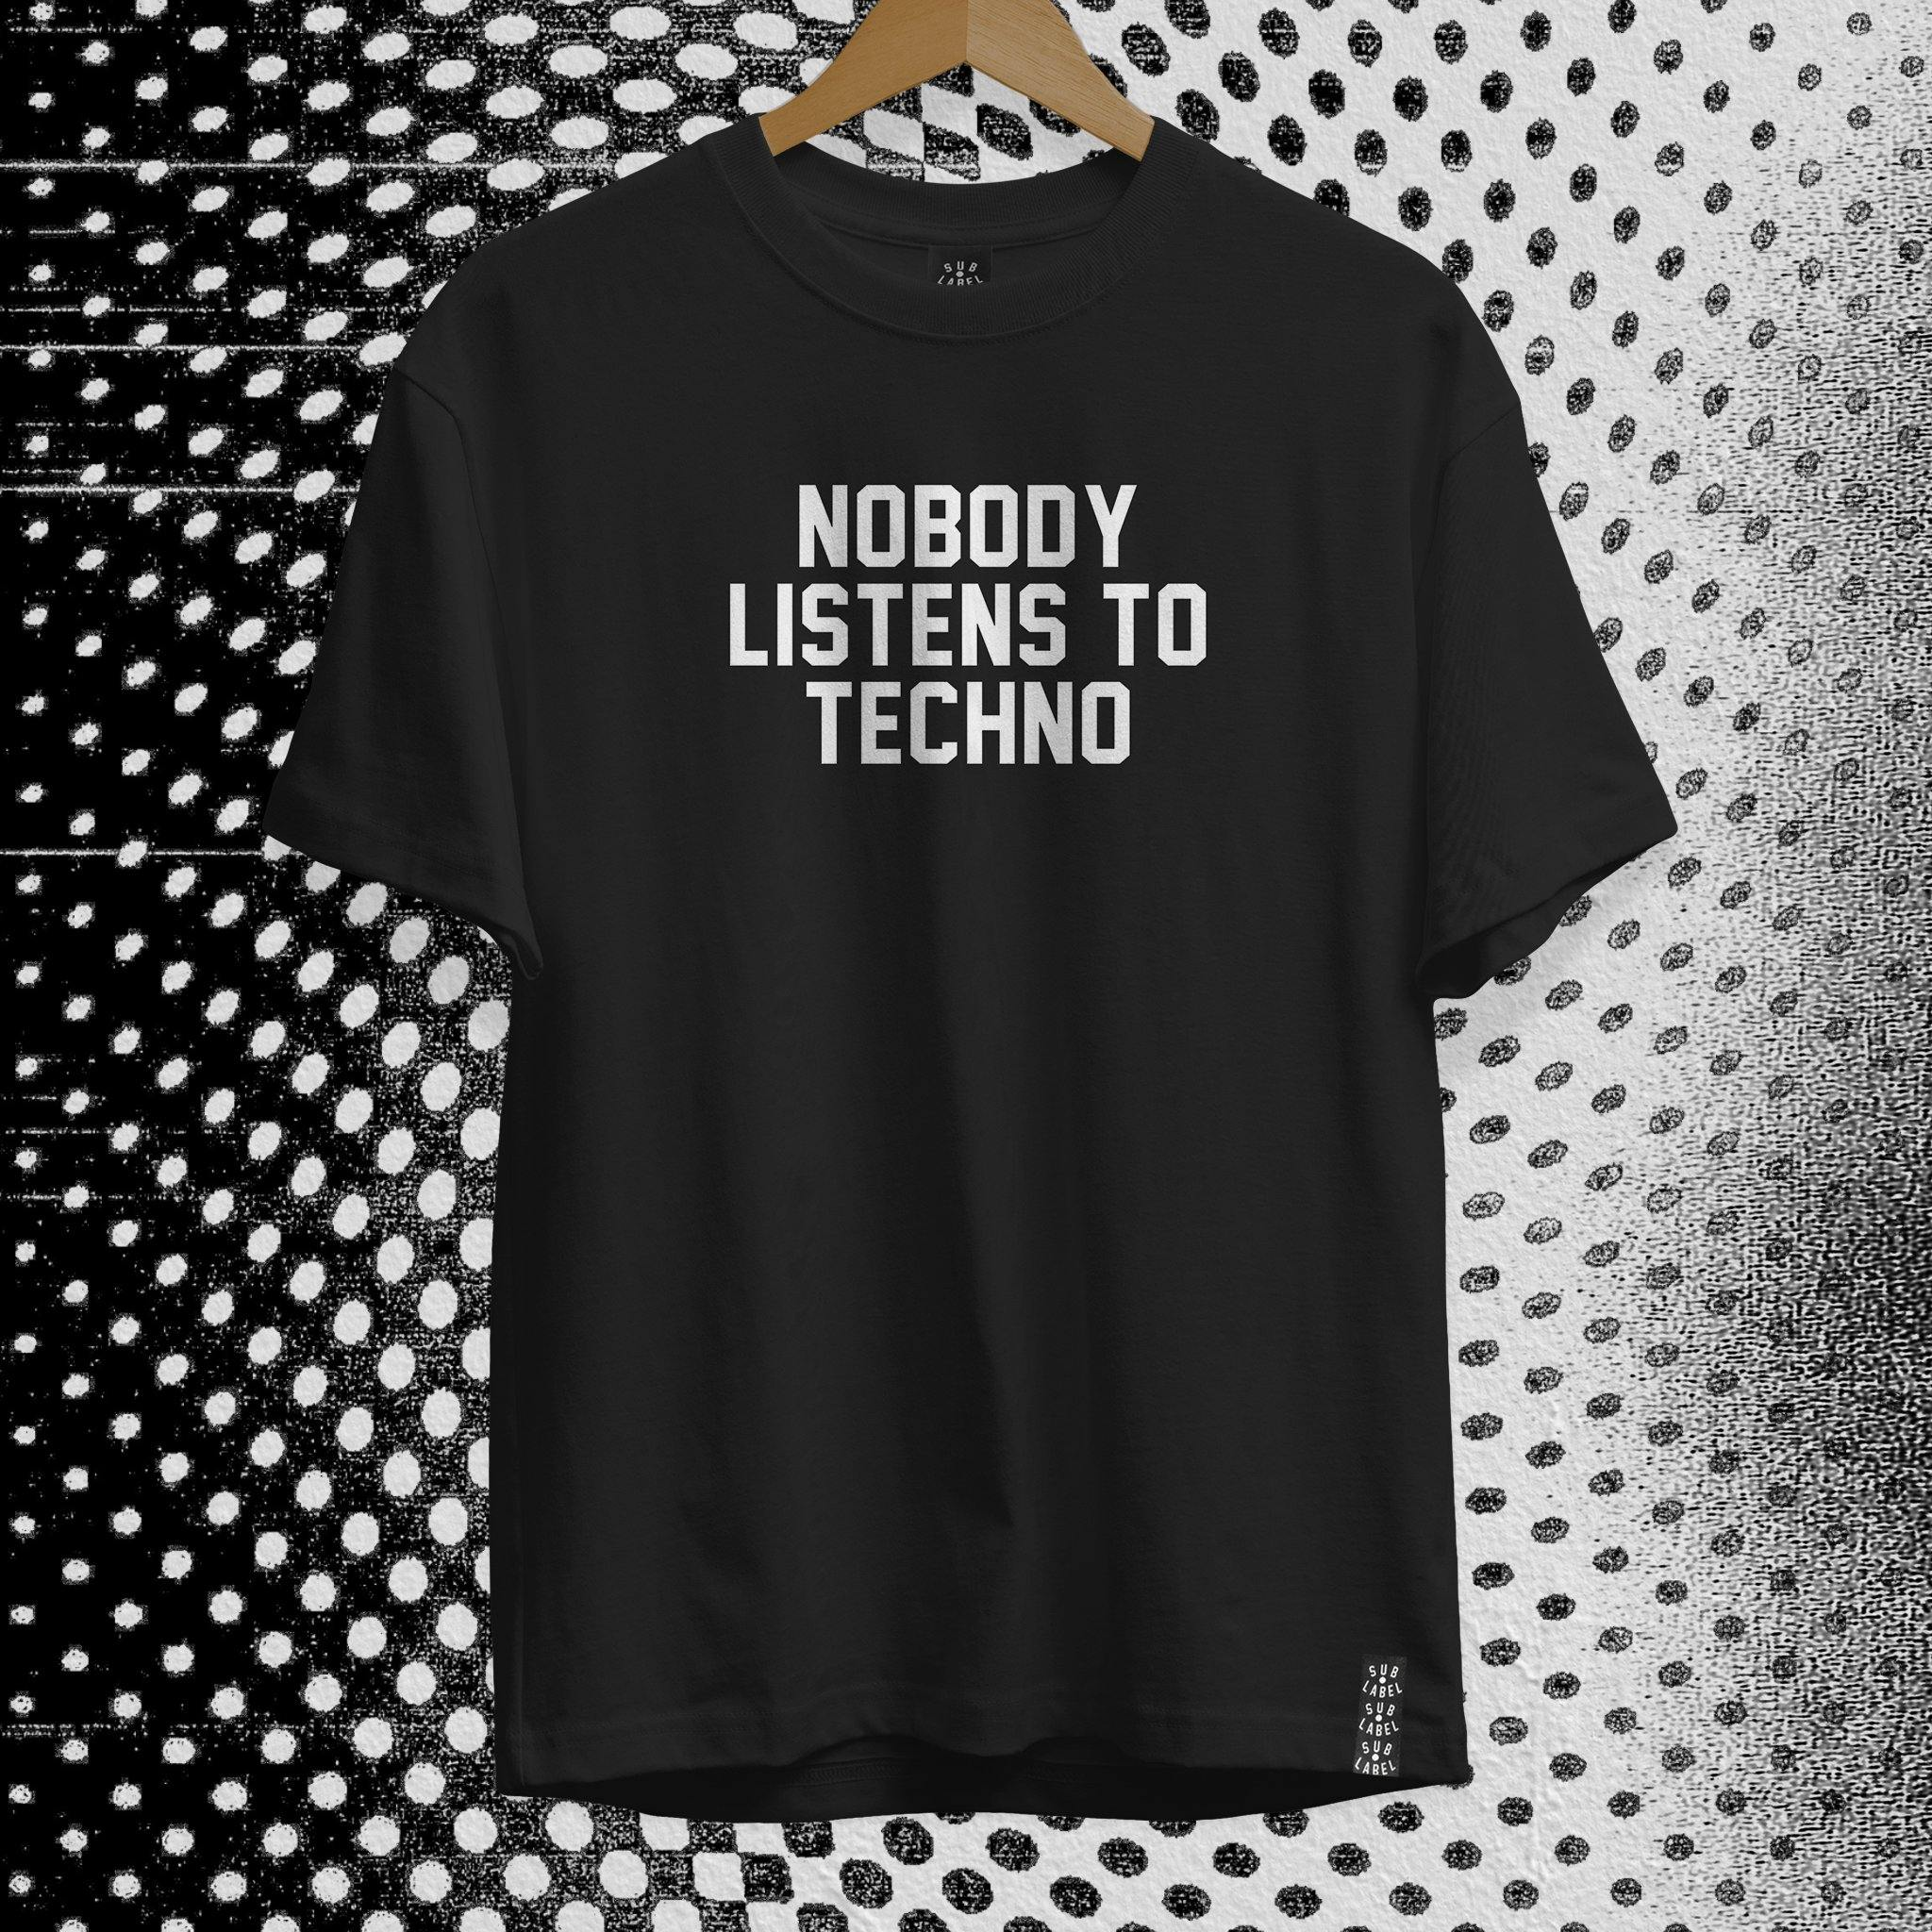 sublabel_nobodylistenstotechno_slimsaidit_techno_rave_club_edm_tshirt_black